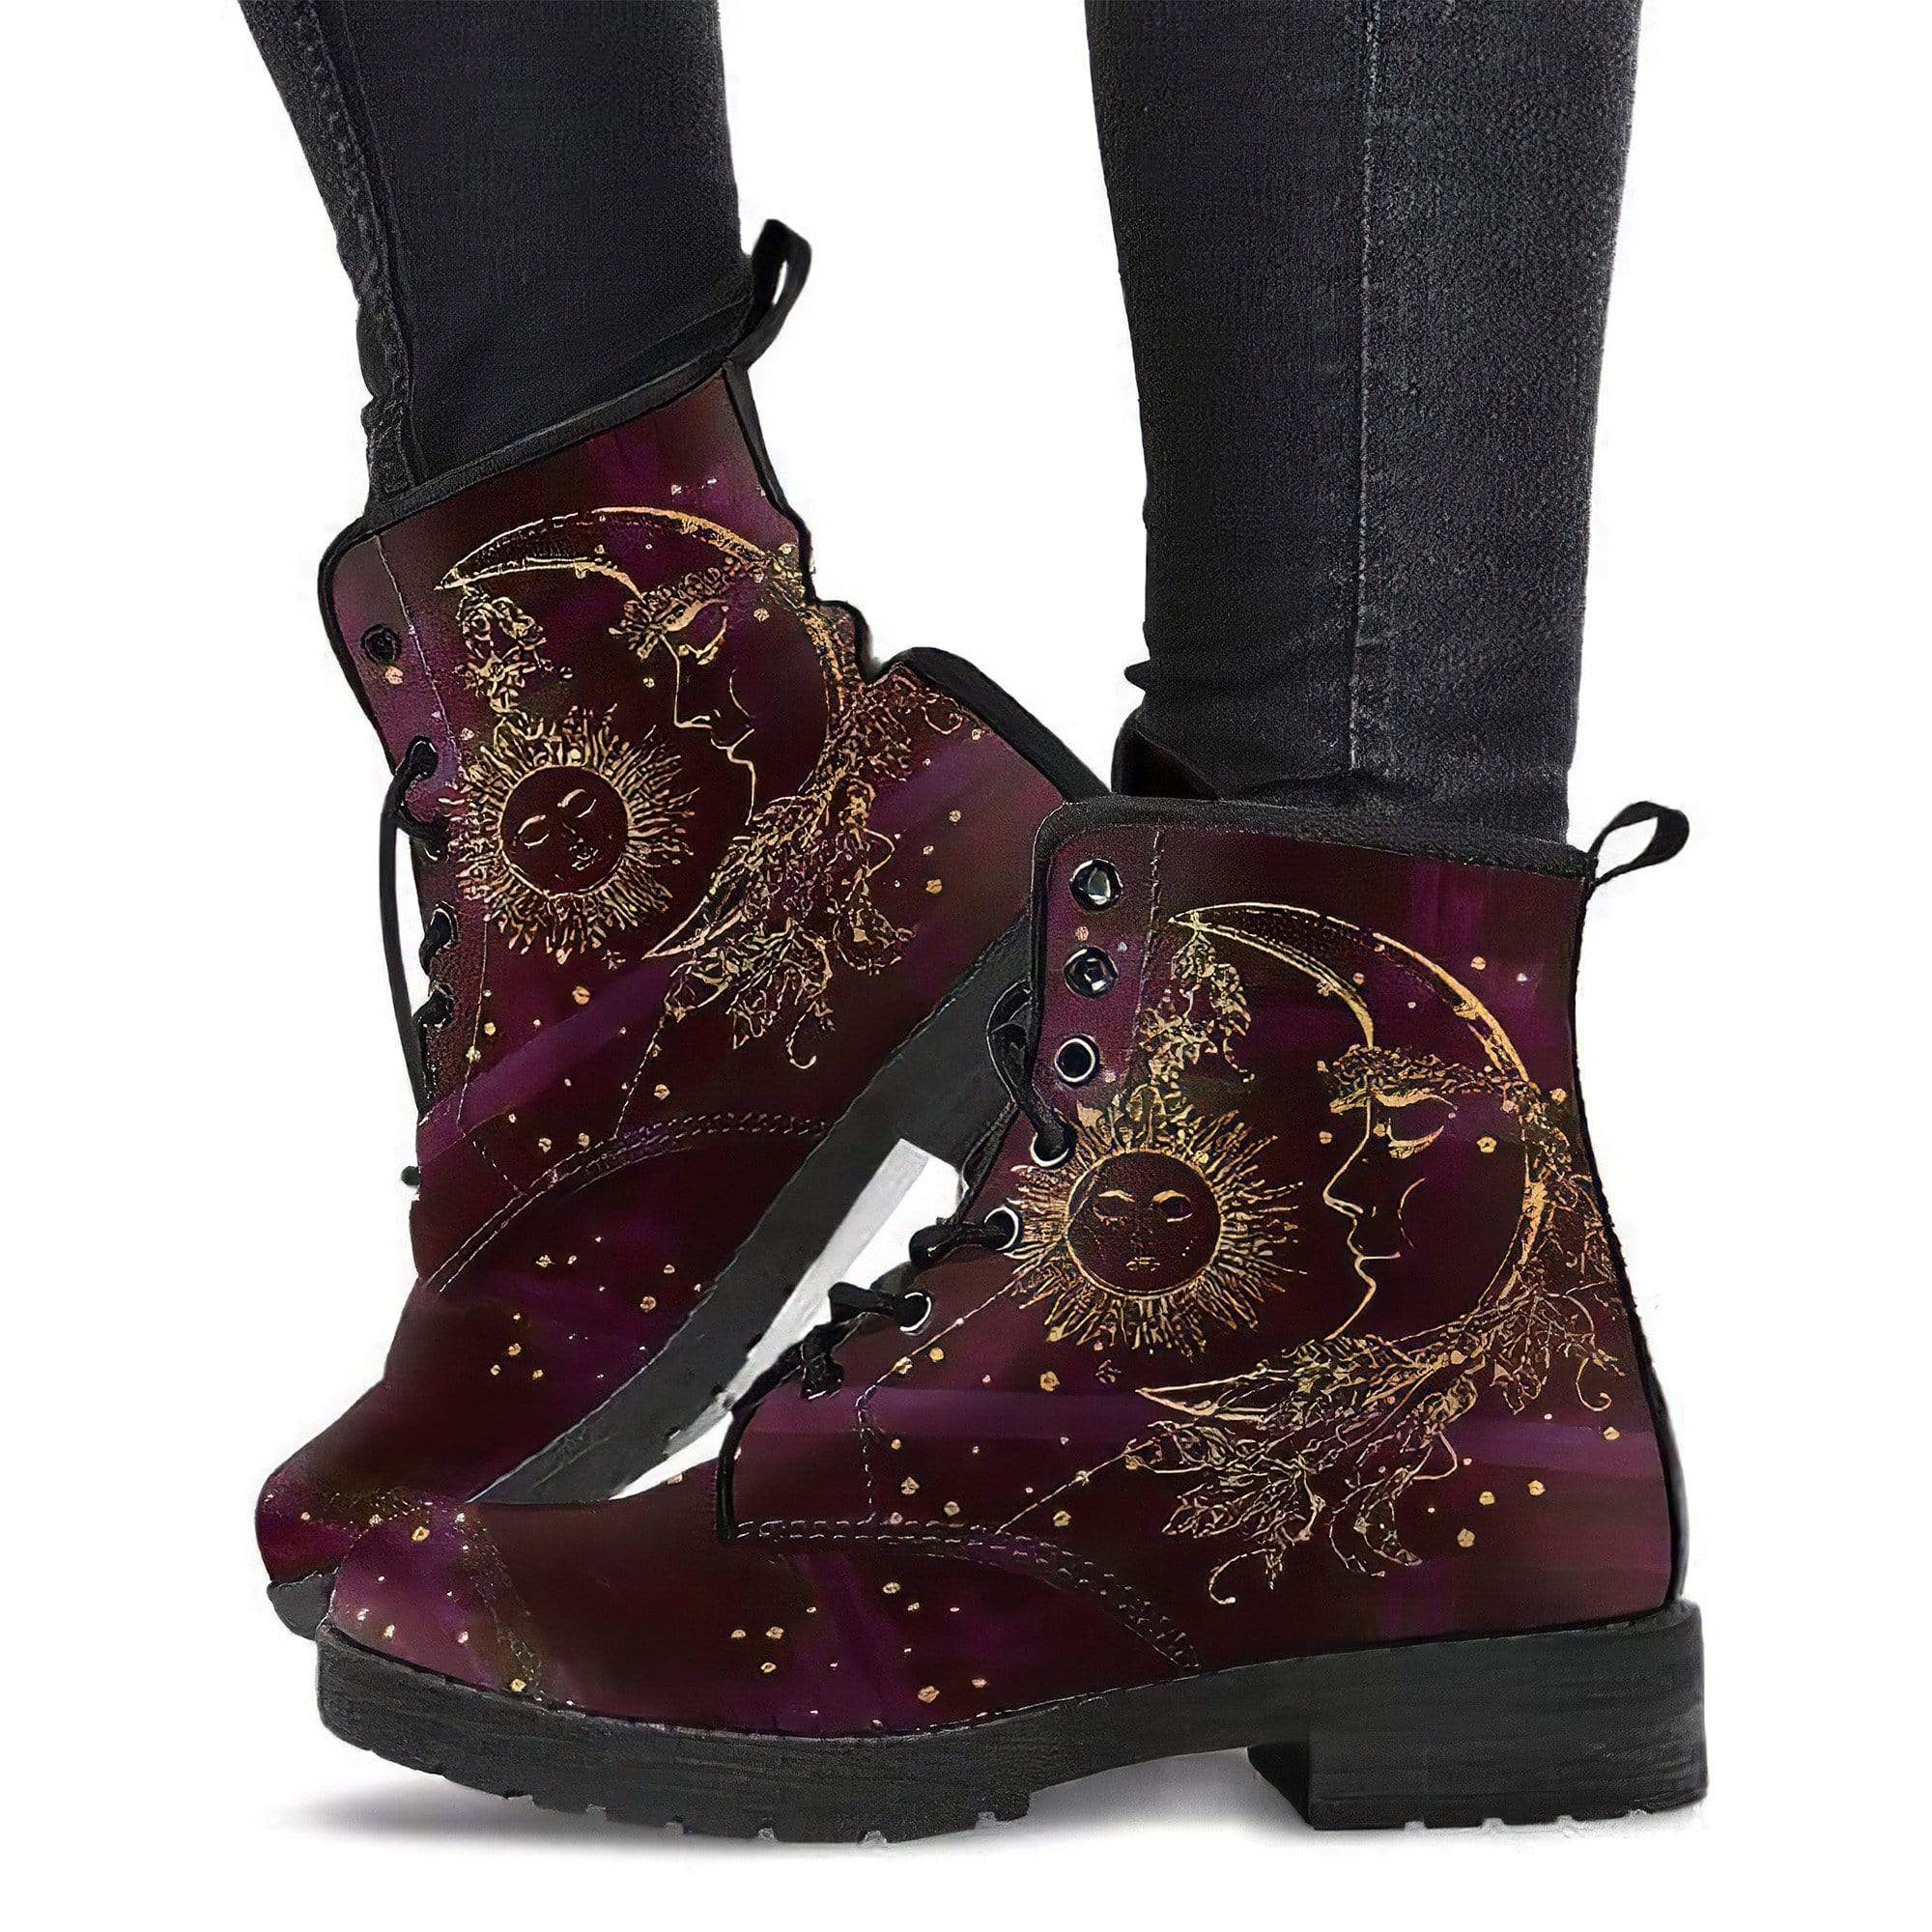 Maroon Sun and Moon Handcrafted Boots Women's Leather Boots